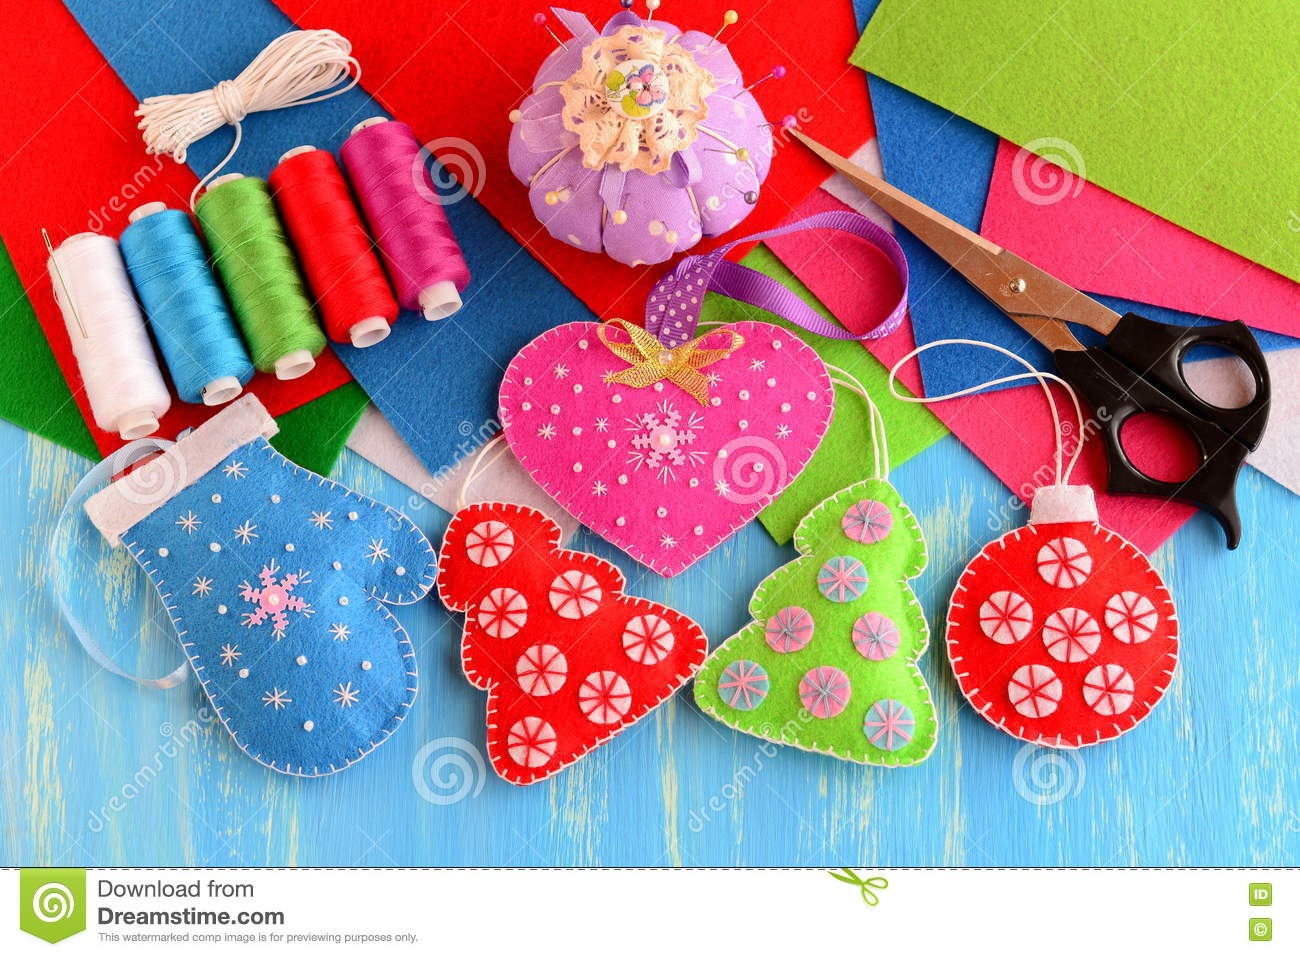 Christmas Tree Decorations Crafts Felt Pink Heart Red And Green Christmas Tree Blue Mitten Red Ball On Wooden Background Stock Image Image Of Children Applique 79417483